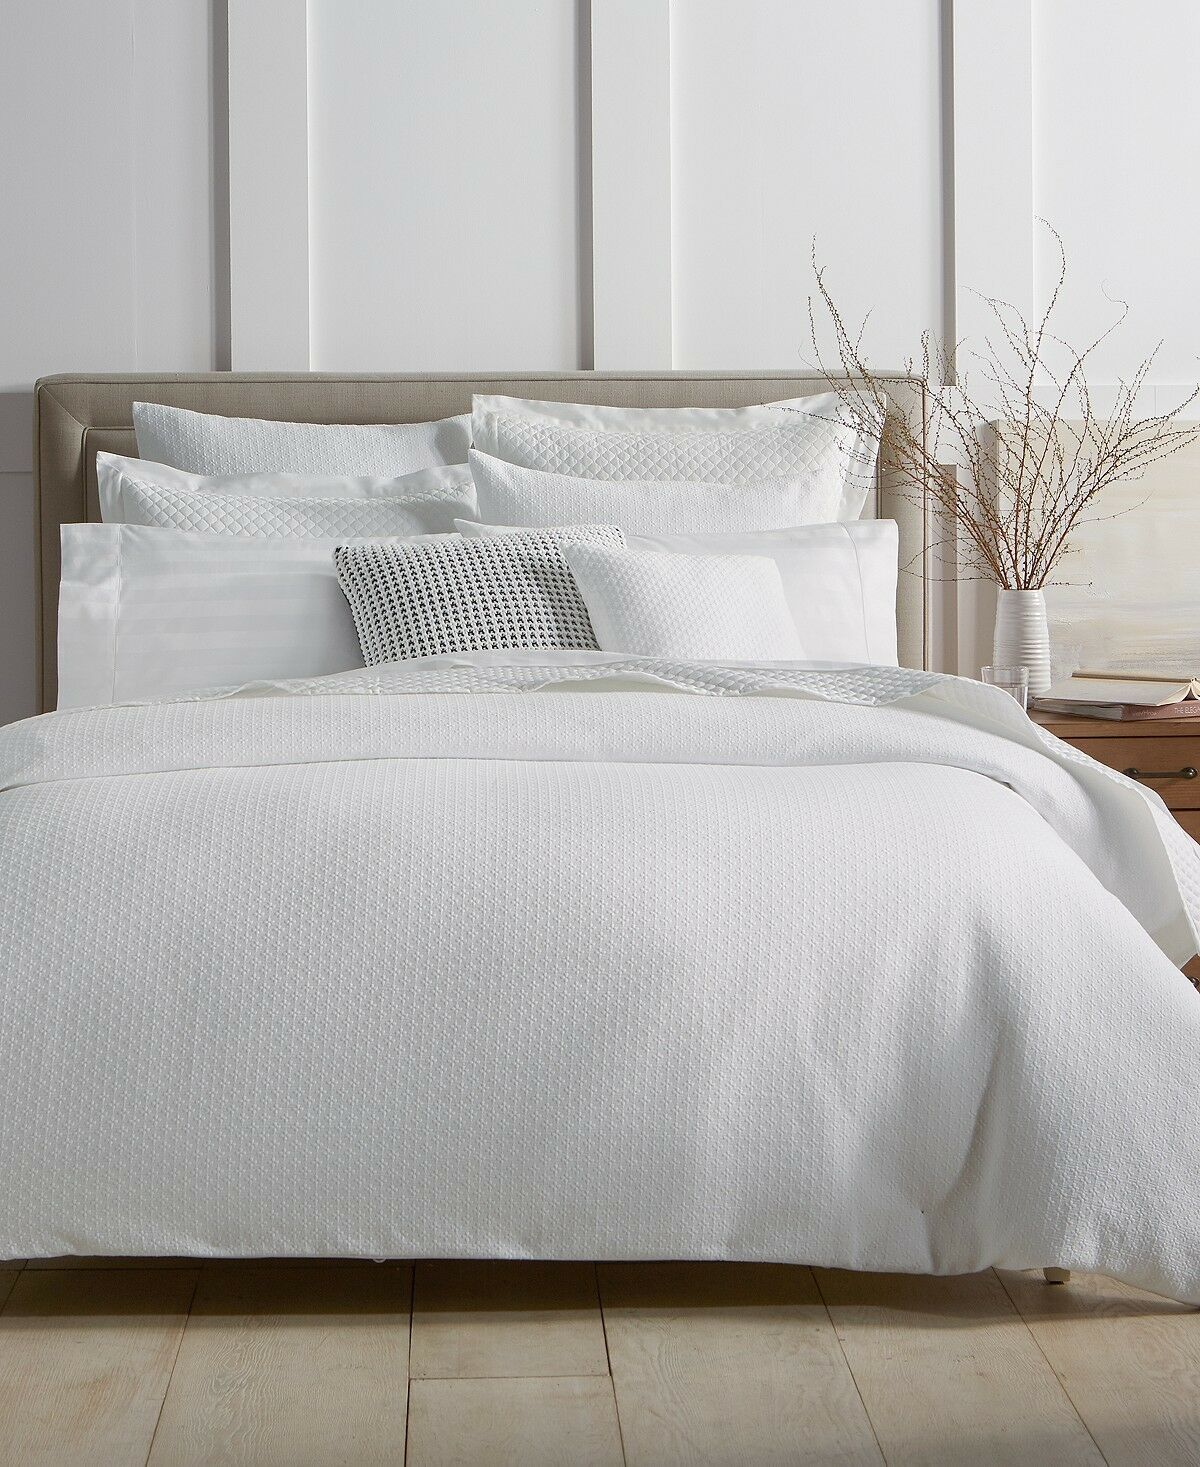 Damask Duvet Charter Club Damask Designs Diamond Dot Cotton F Q Duvet Cover Shams White